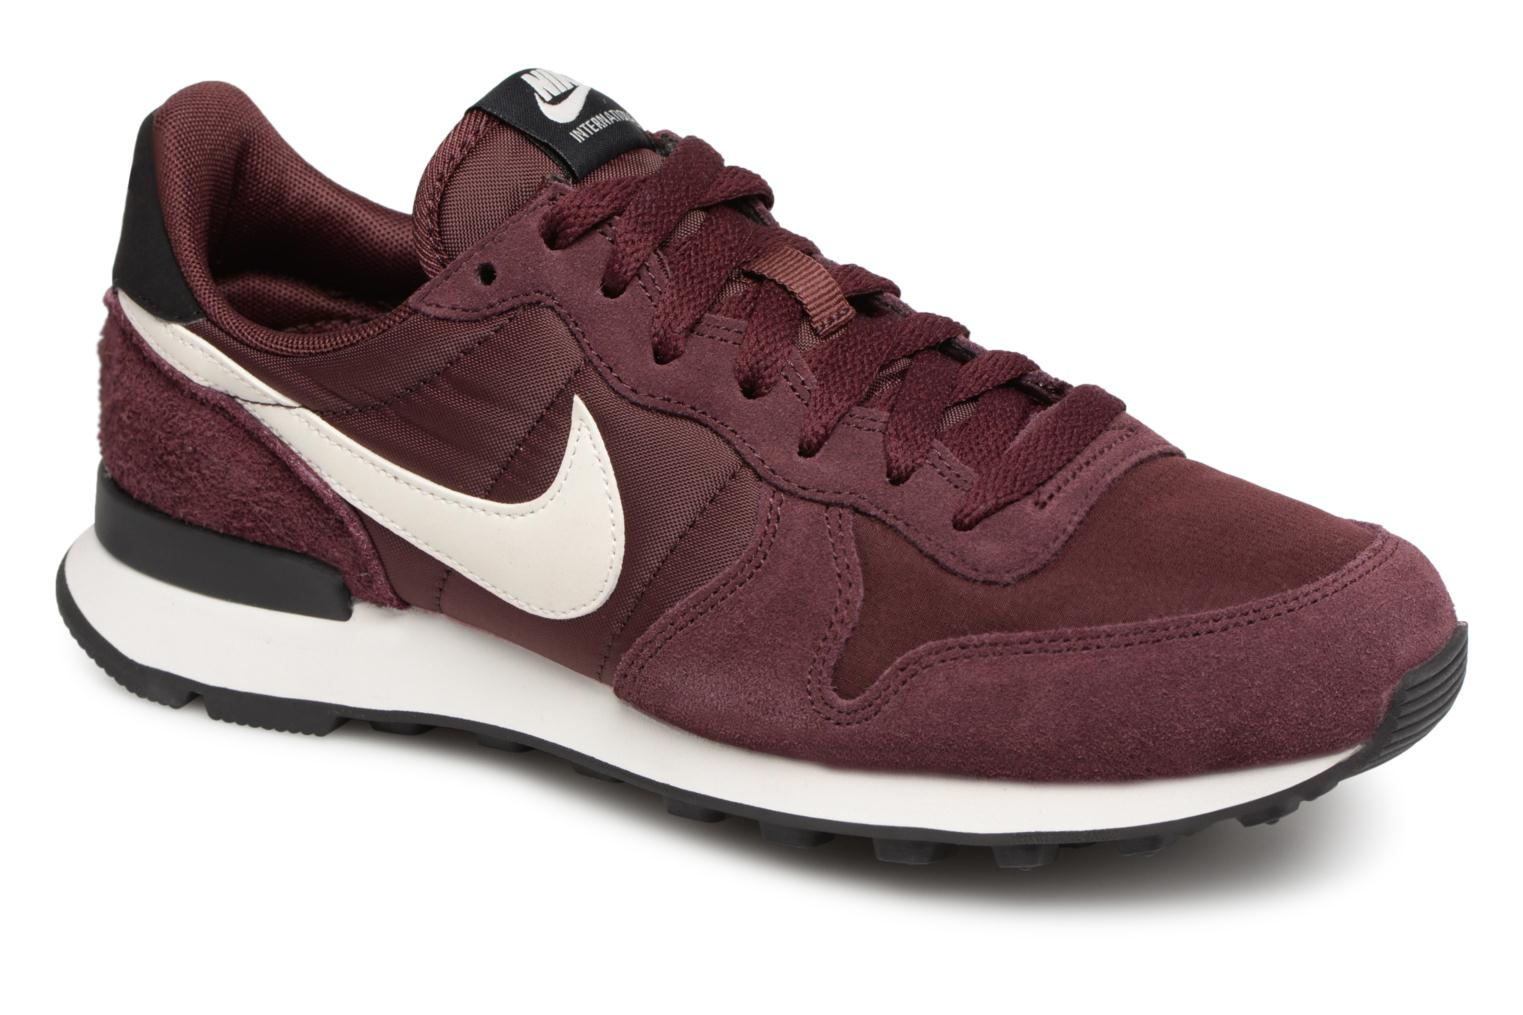 518f21678f9c ... coupon baskets nike wmns internationalist bordeaux vue détail paire  33a6b ab65d